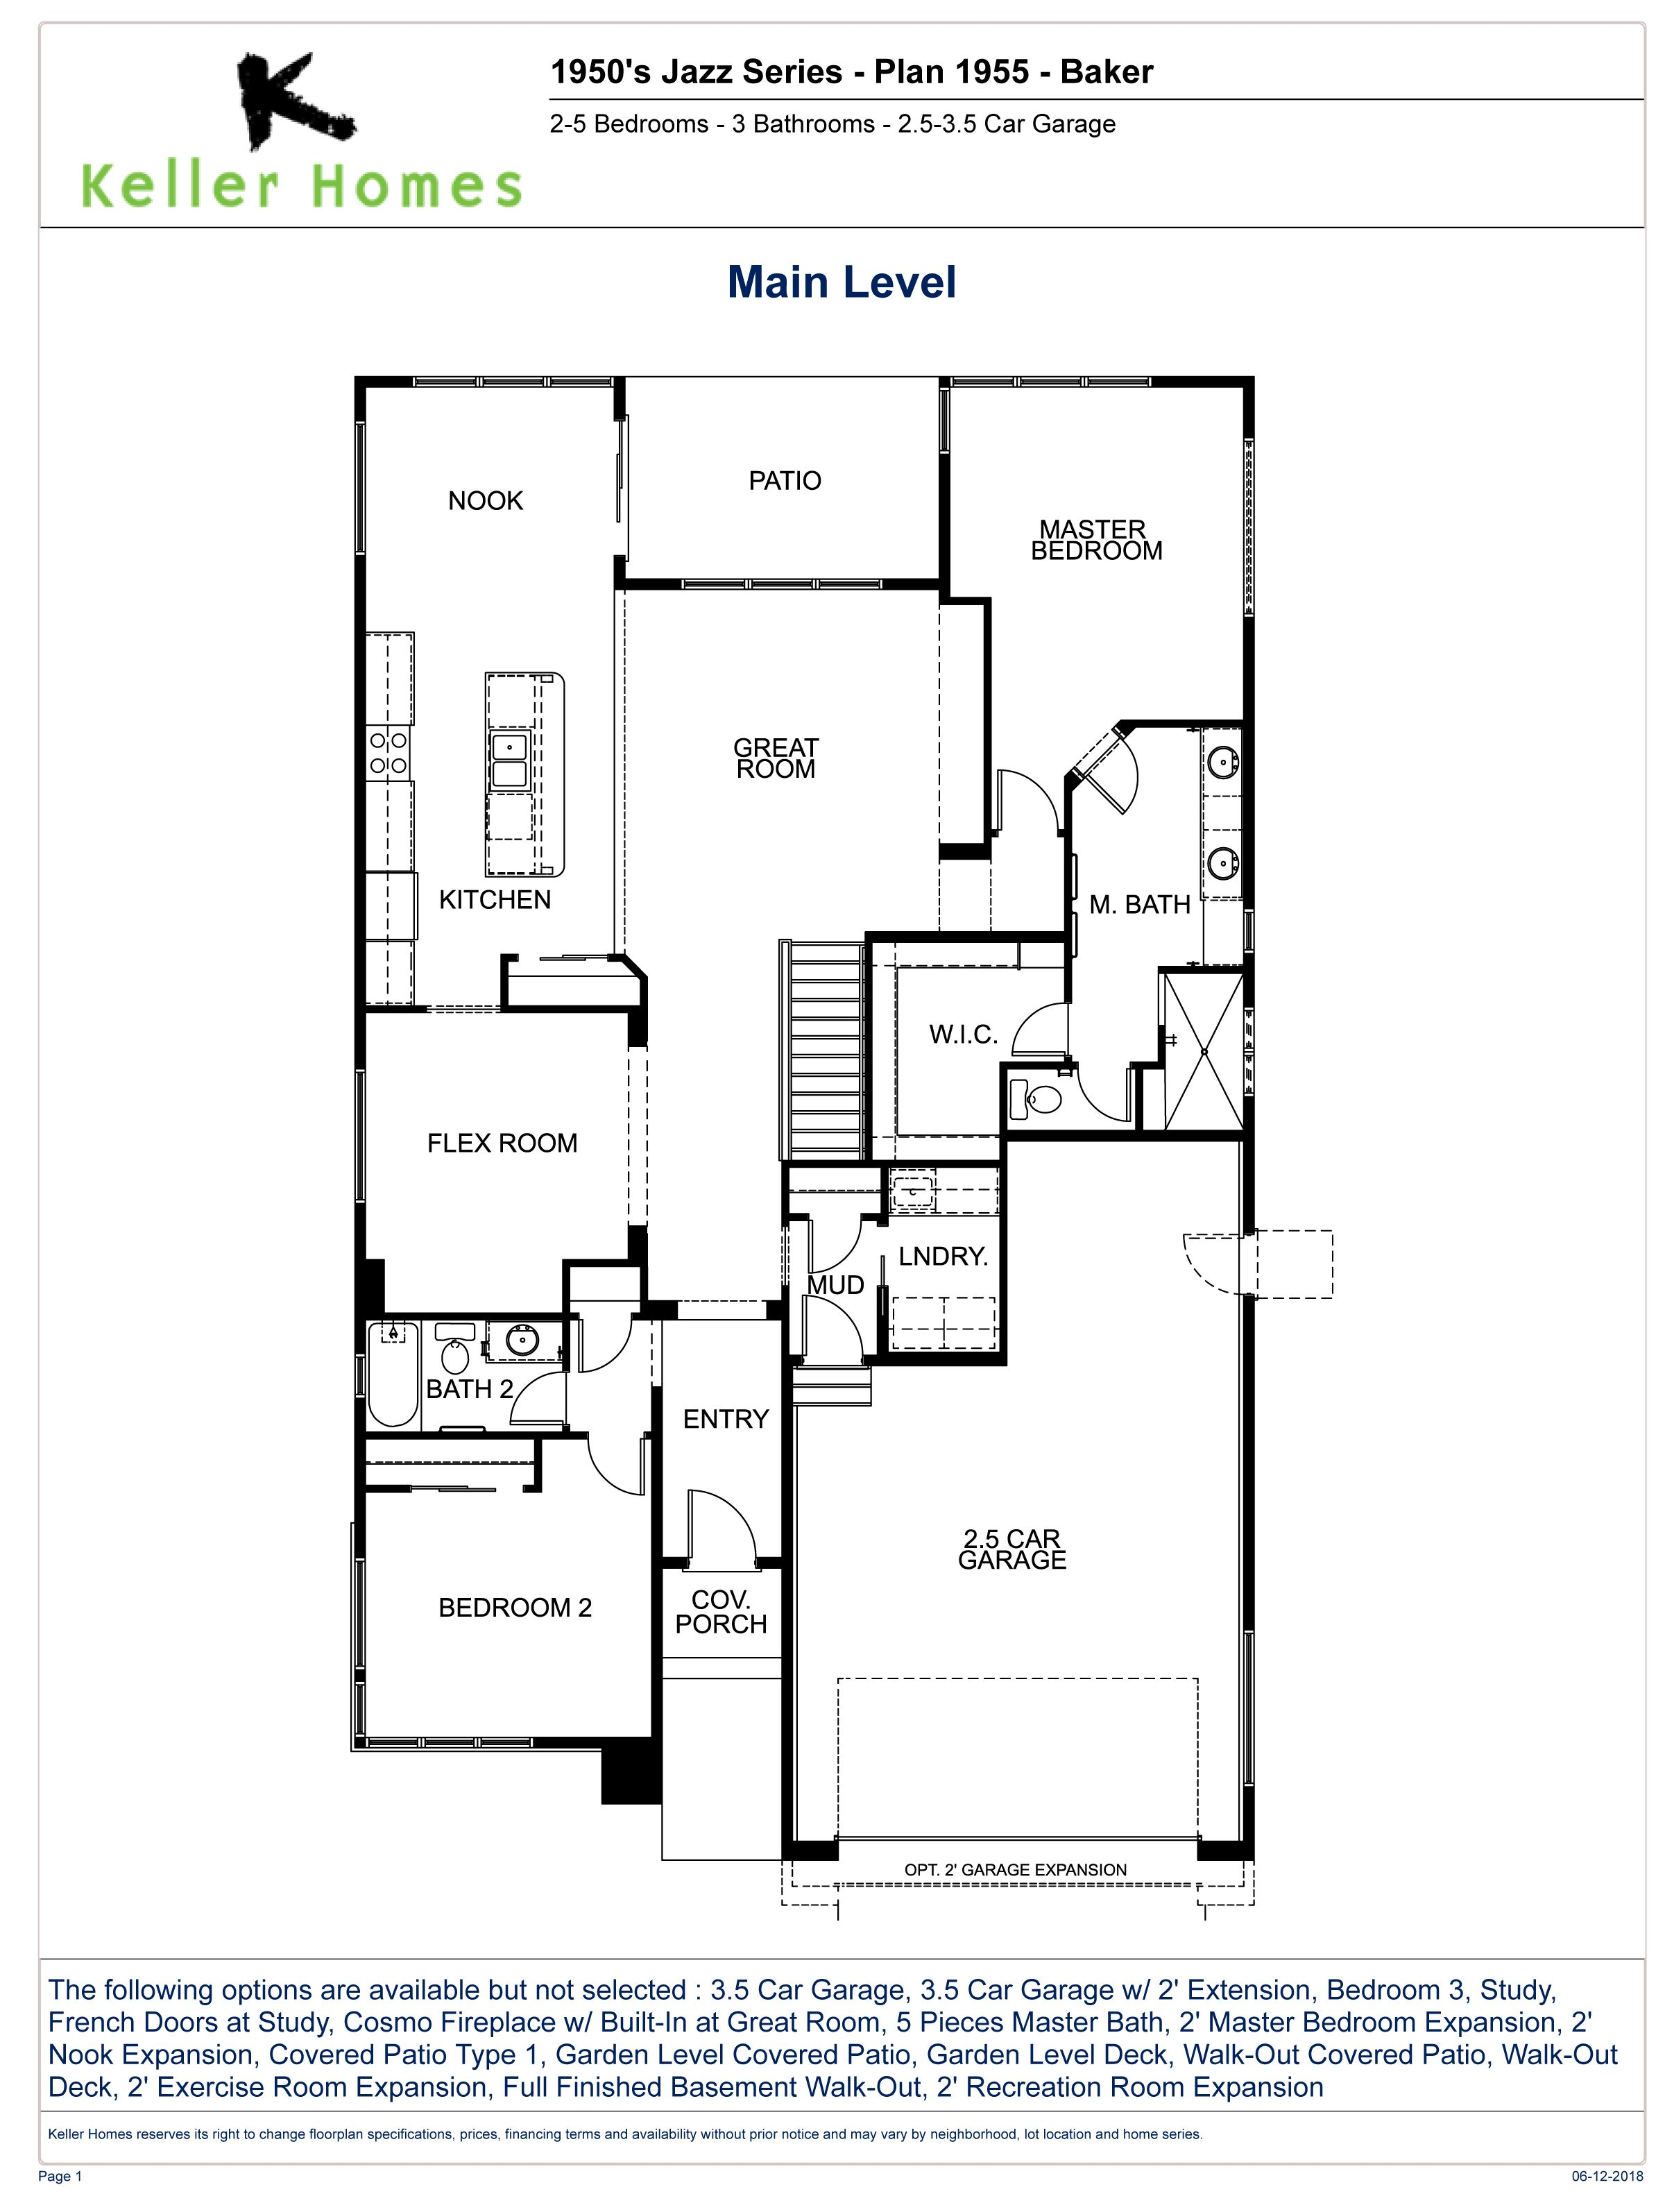 The Baker Interactive Floorplan Subject To Change Without Notice Floor Plans How To Plan Ranch House